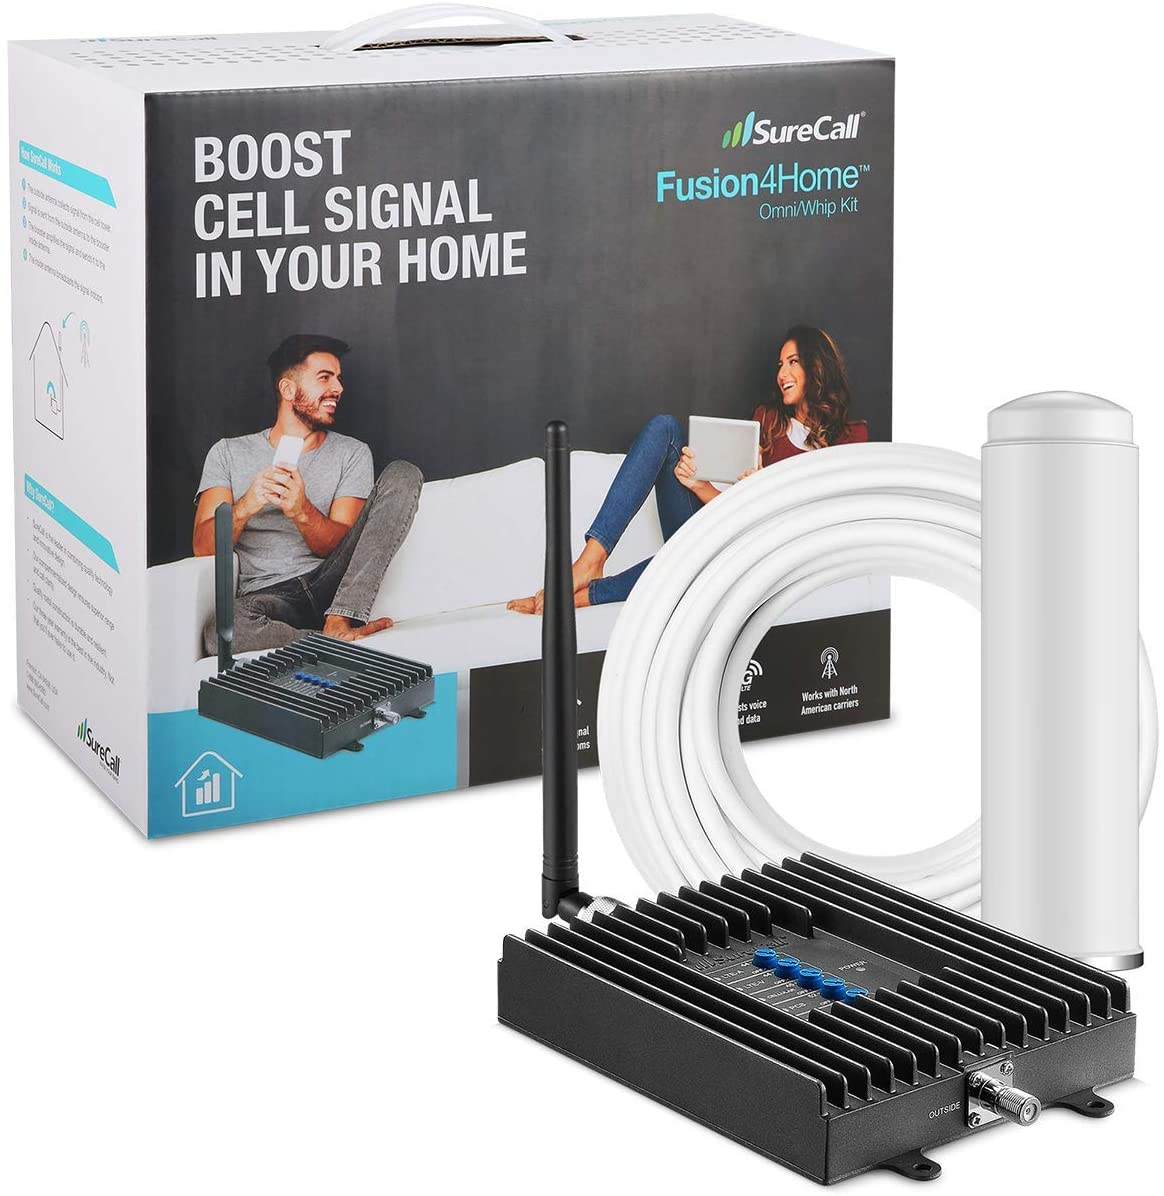 SureCall fusion4home cell booster